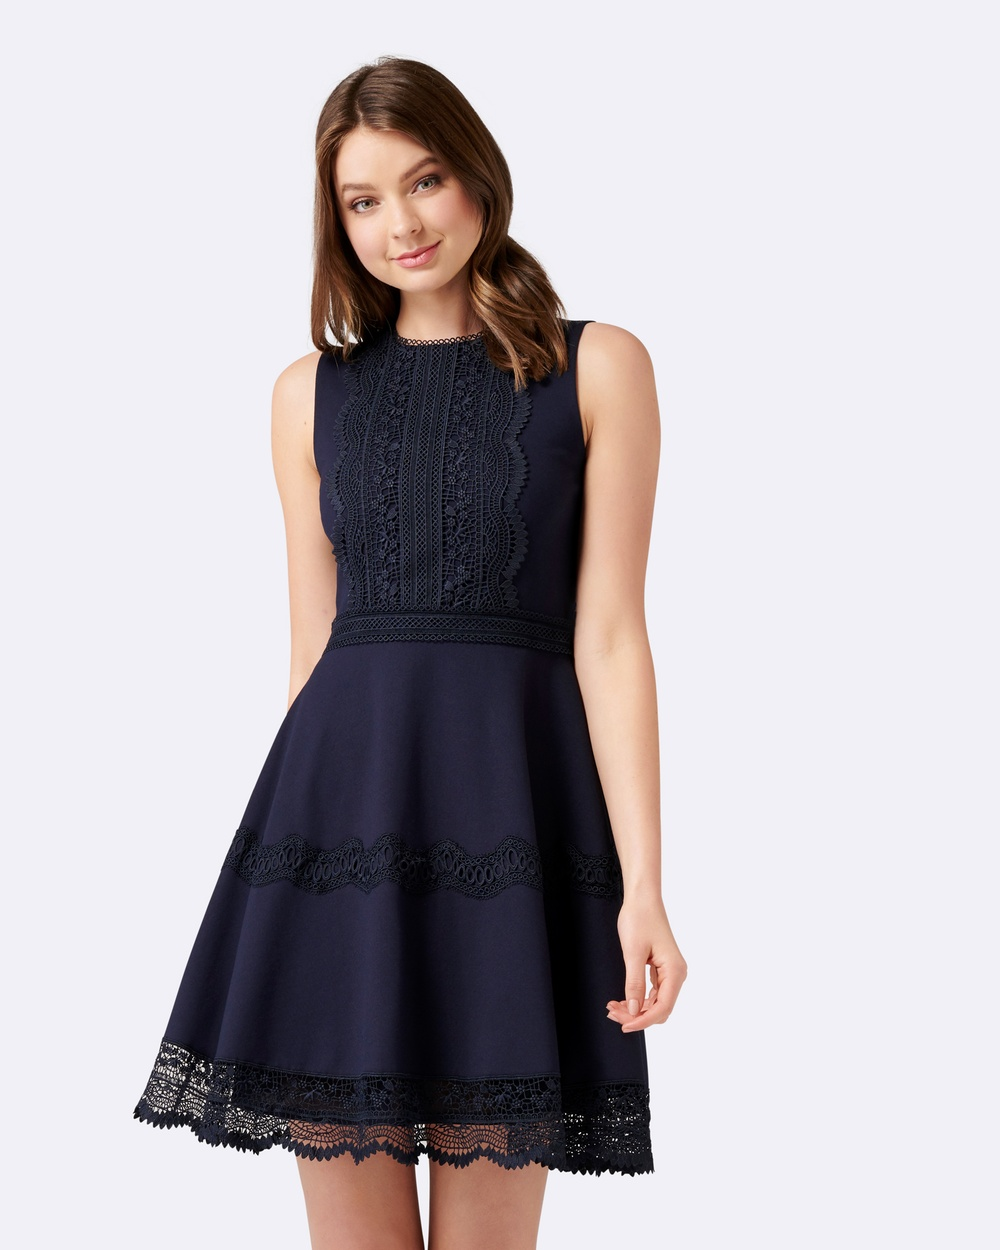 Forever New Tara Ponte Spliced Lace Dress Dresses Navy Tara Ponte Spliced Lace Dress